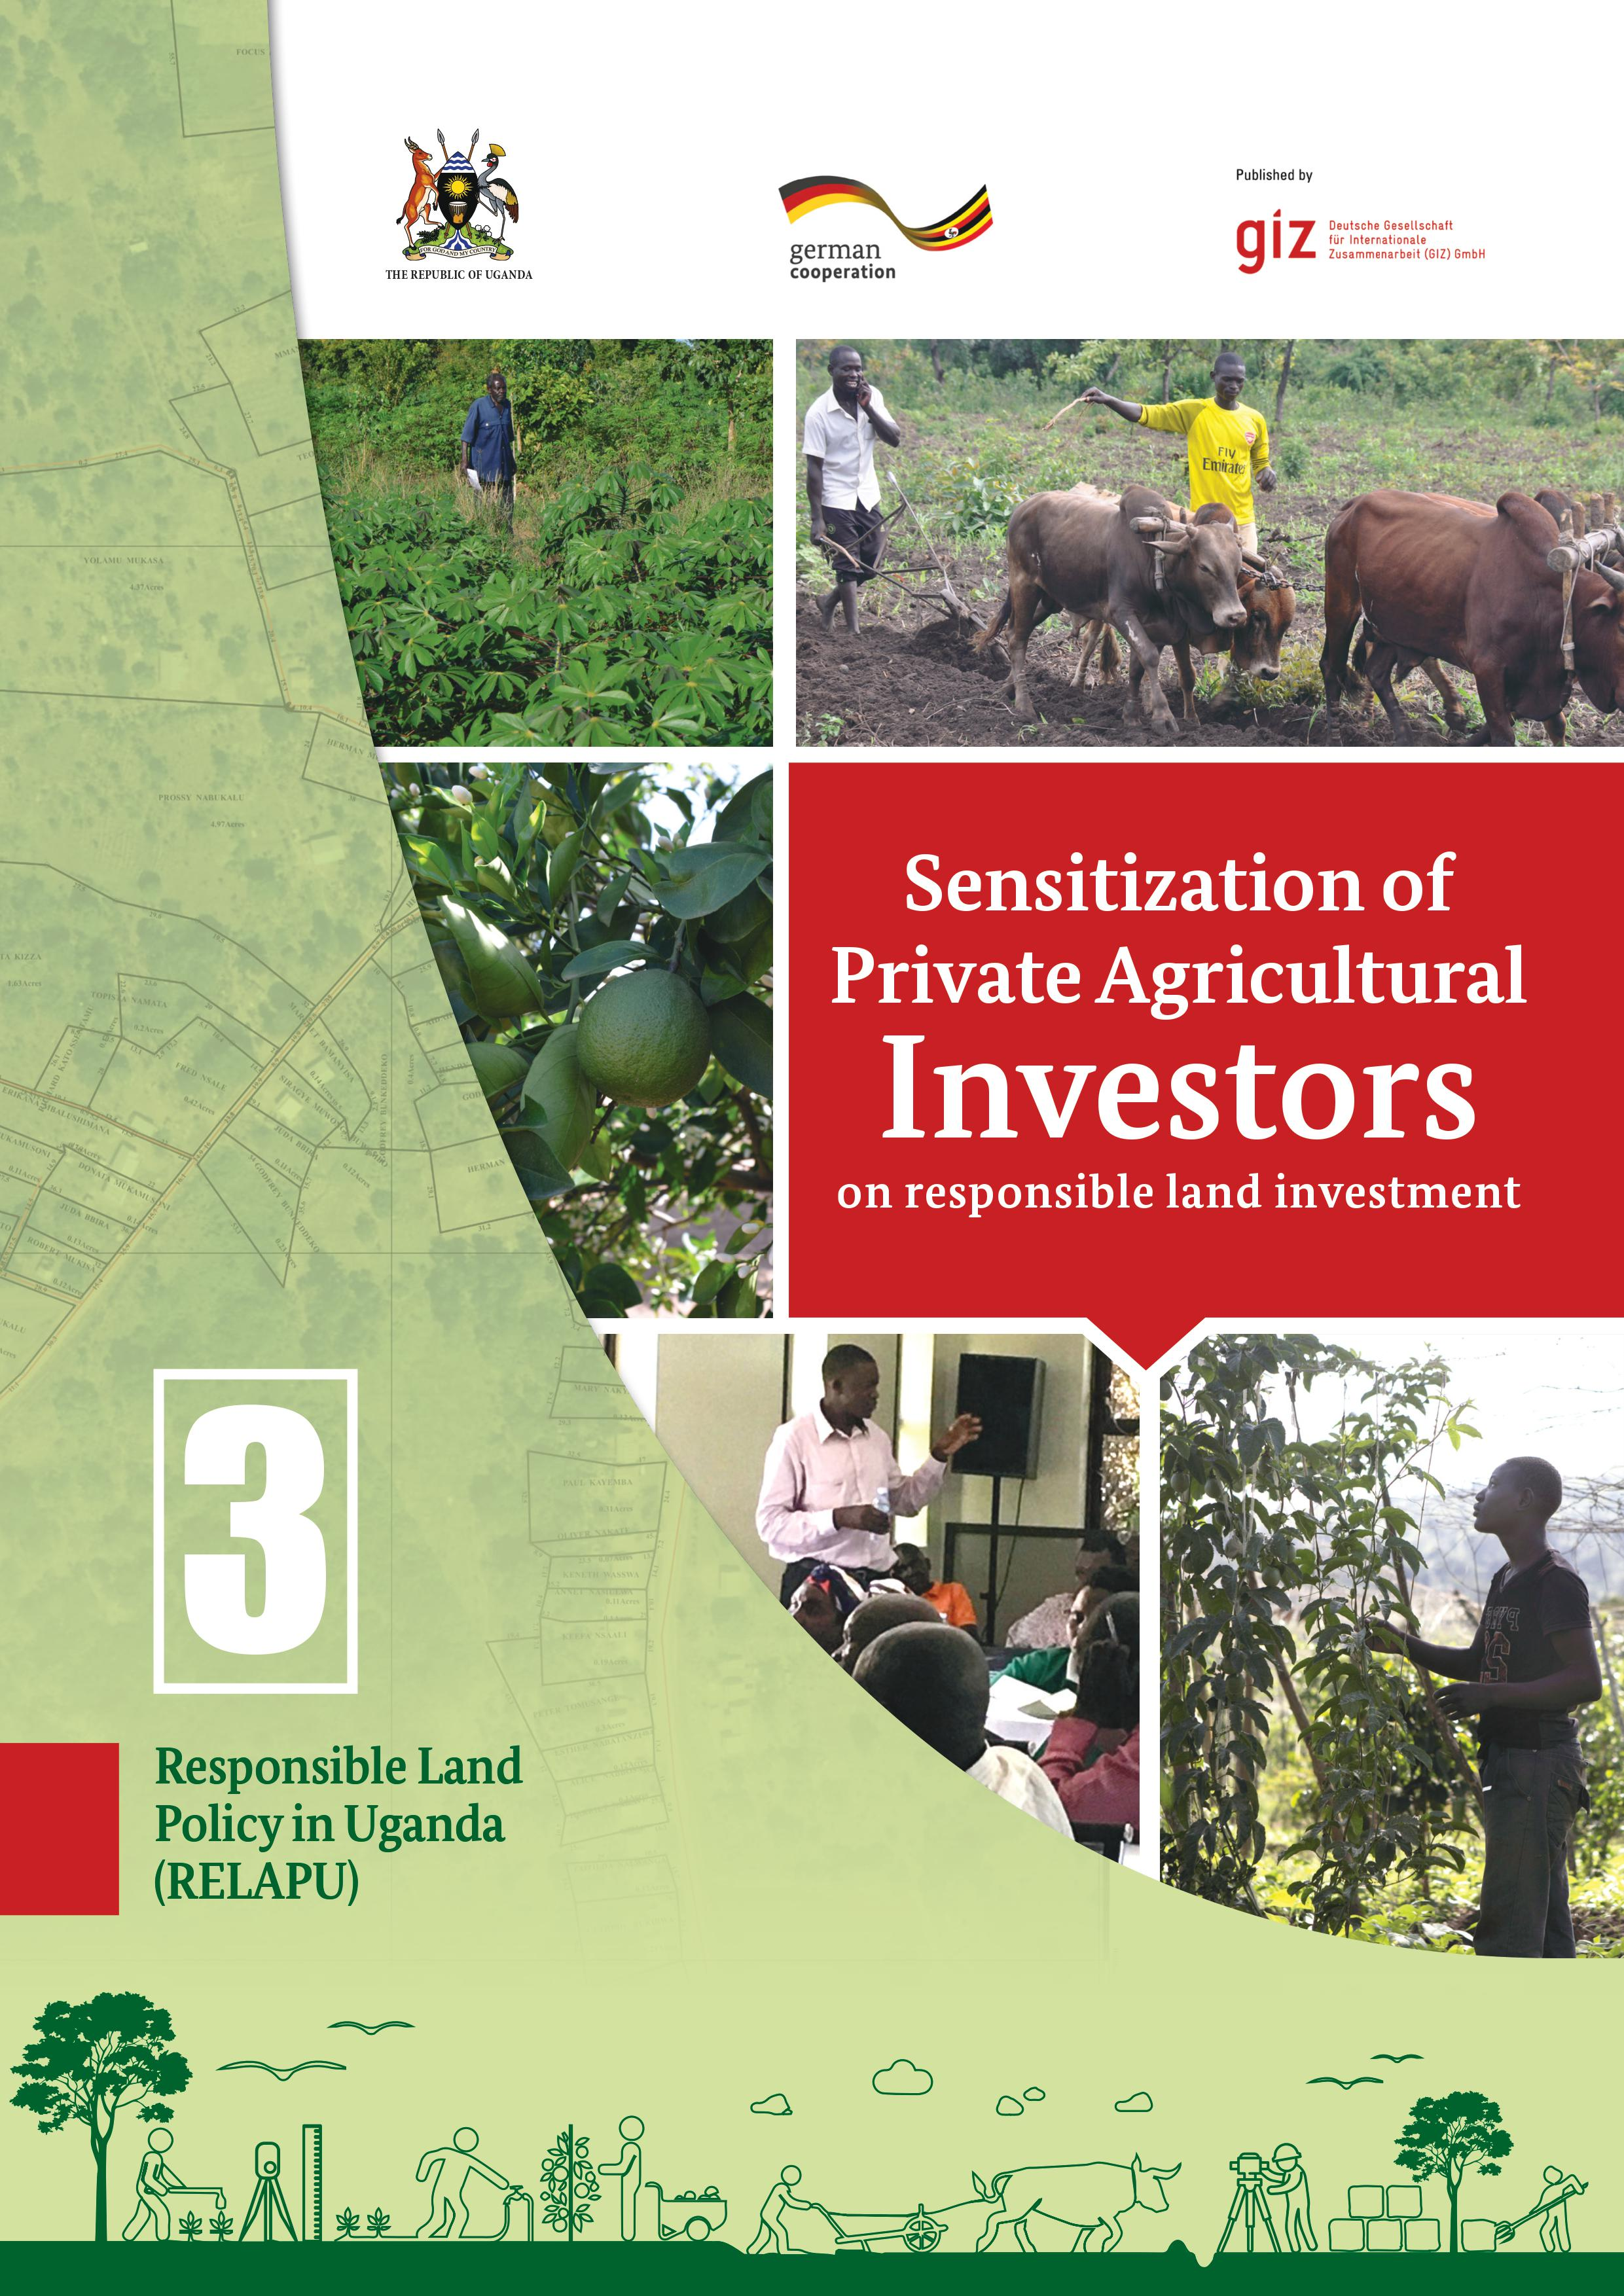 Sensitization of private agricultural investors on responsible land investment in Uganda